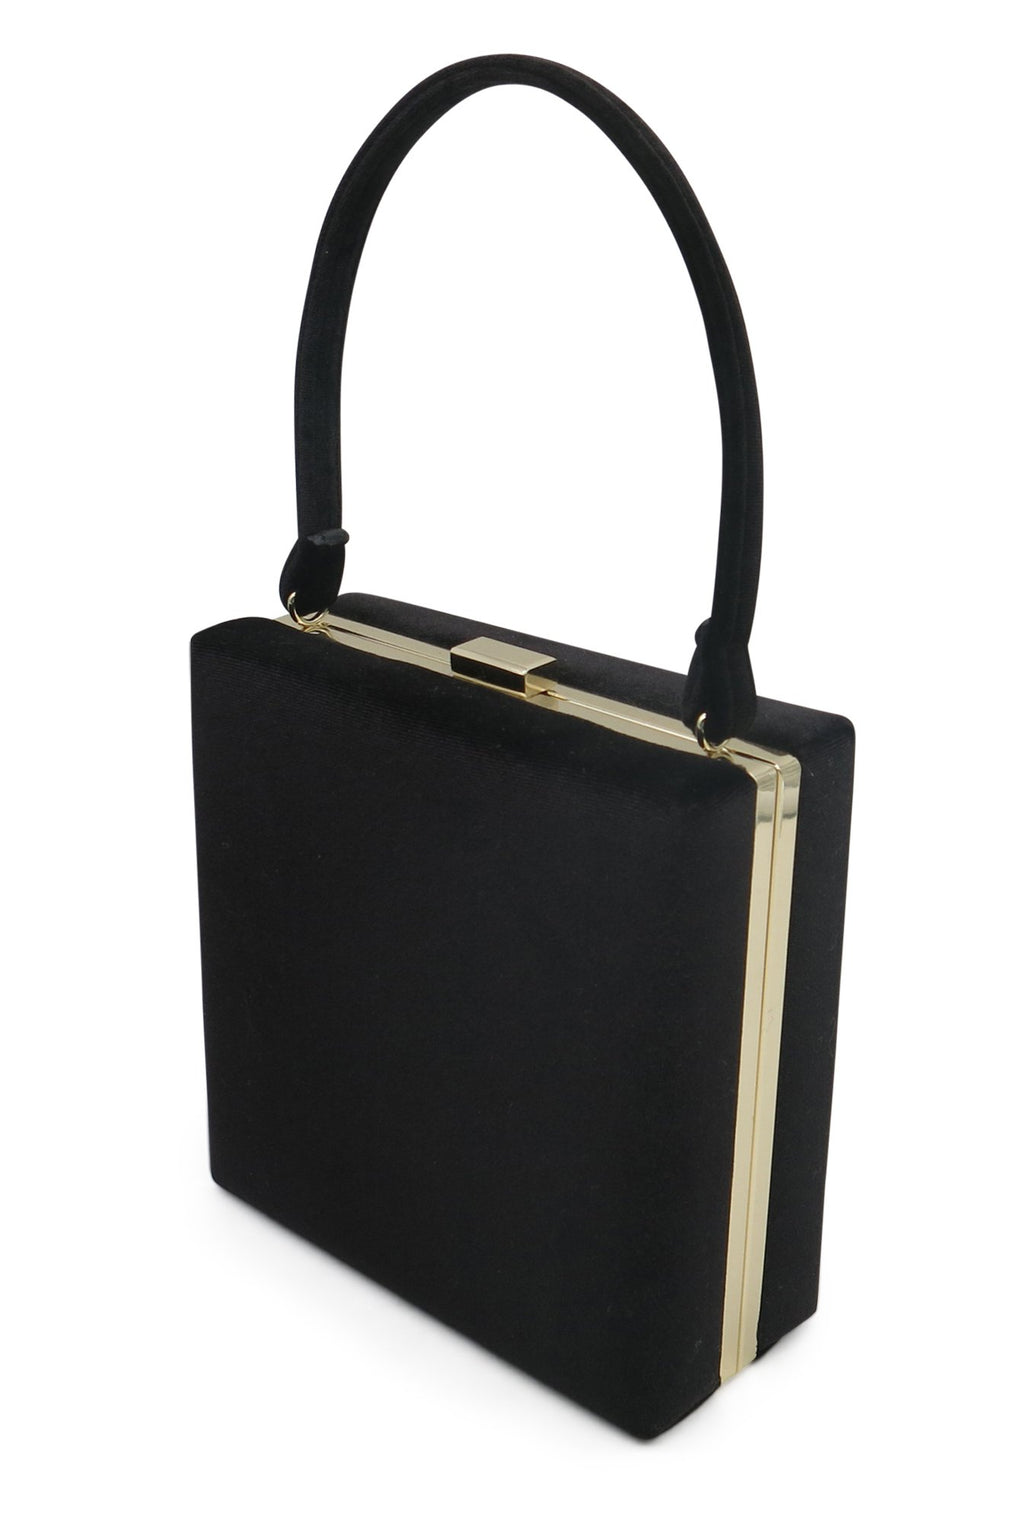 Morgan & Taylor  Cameron Top Handle Velvet Bag in Navy or Black